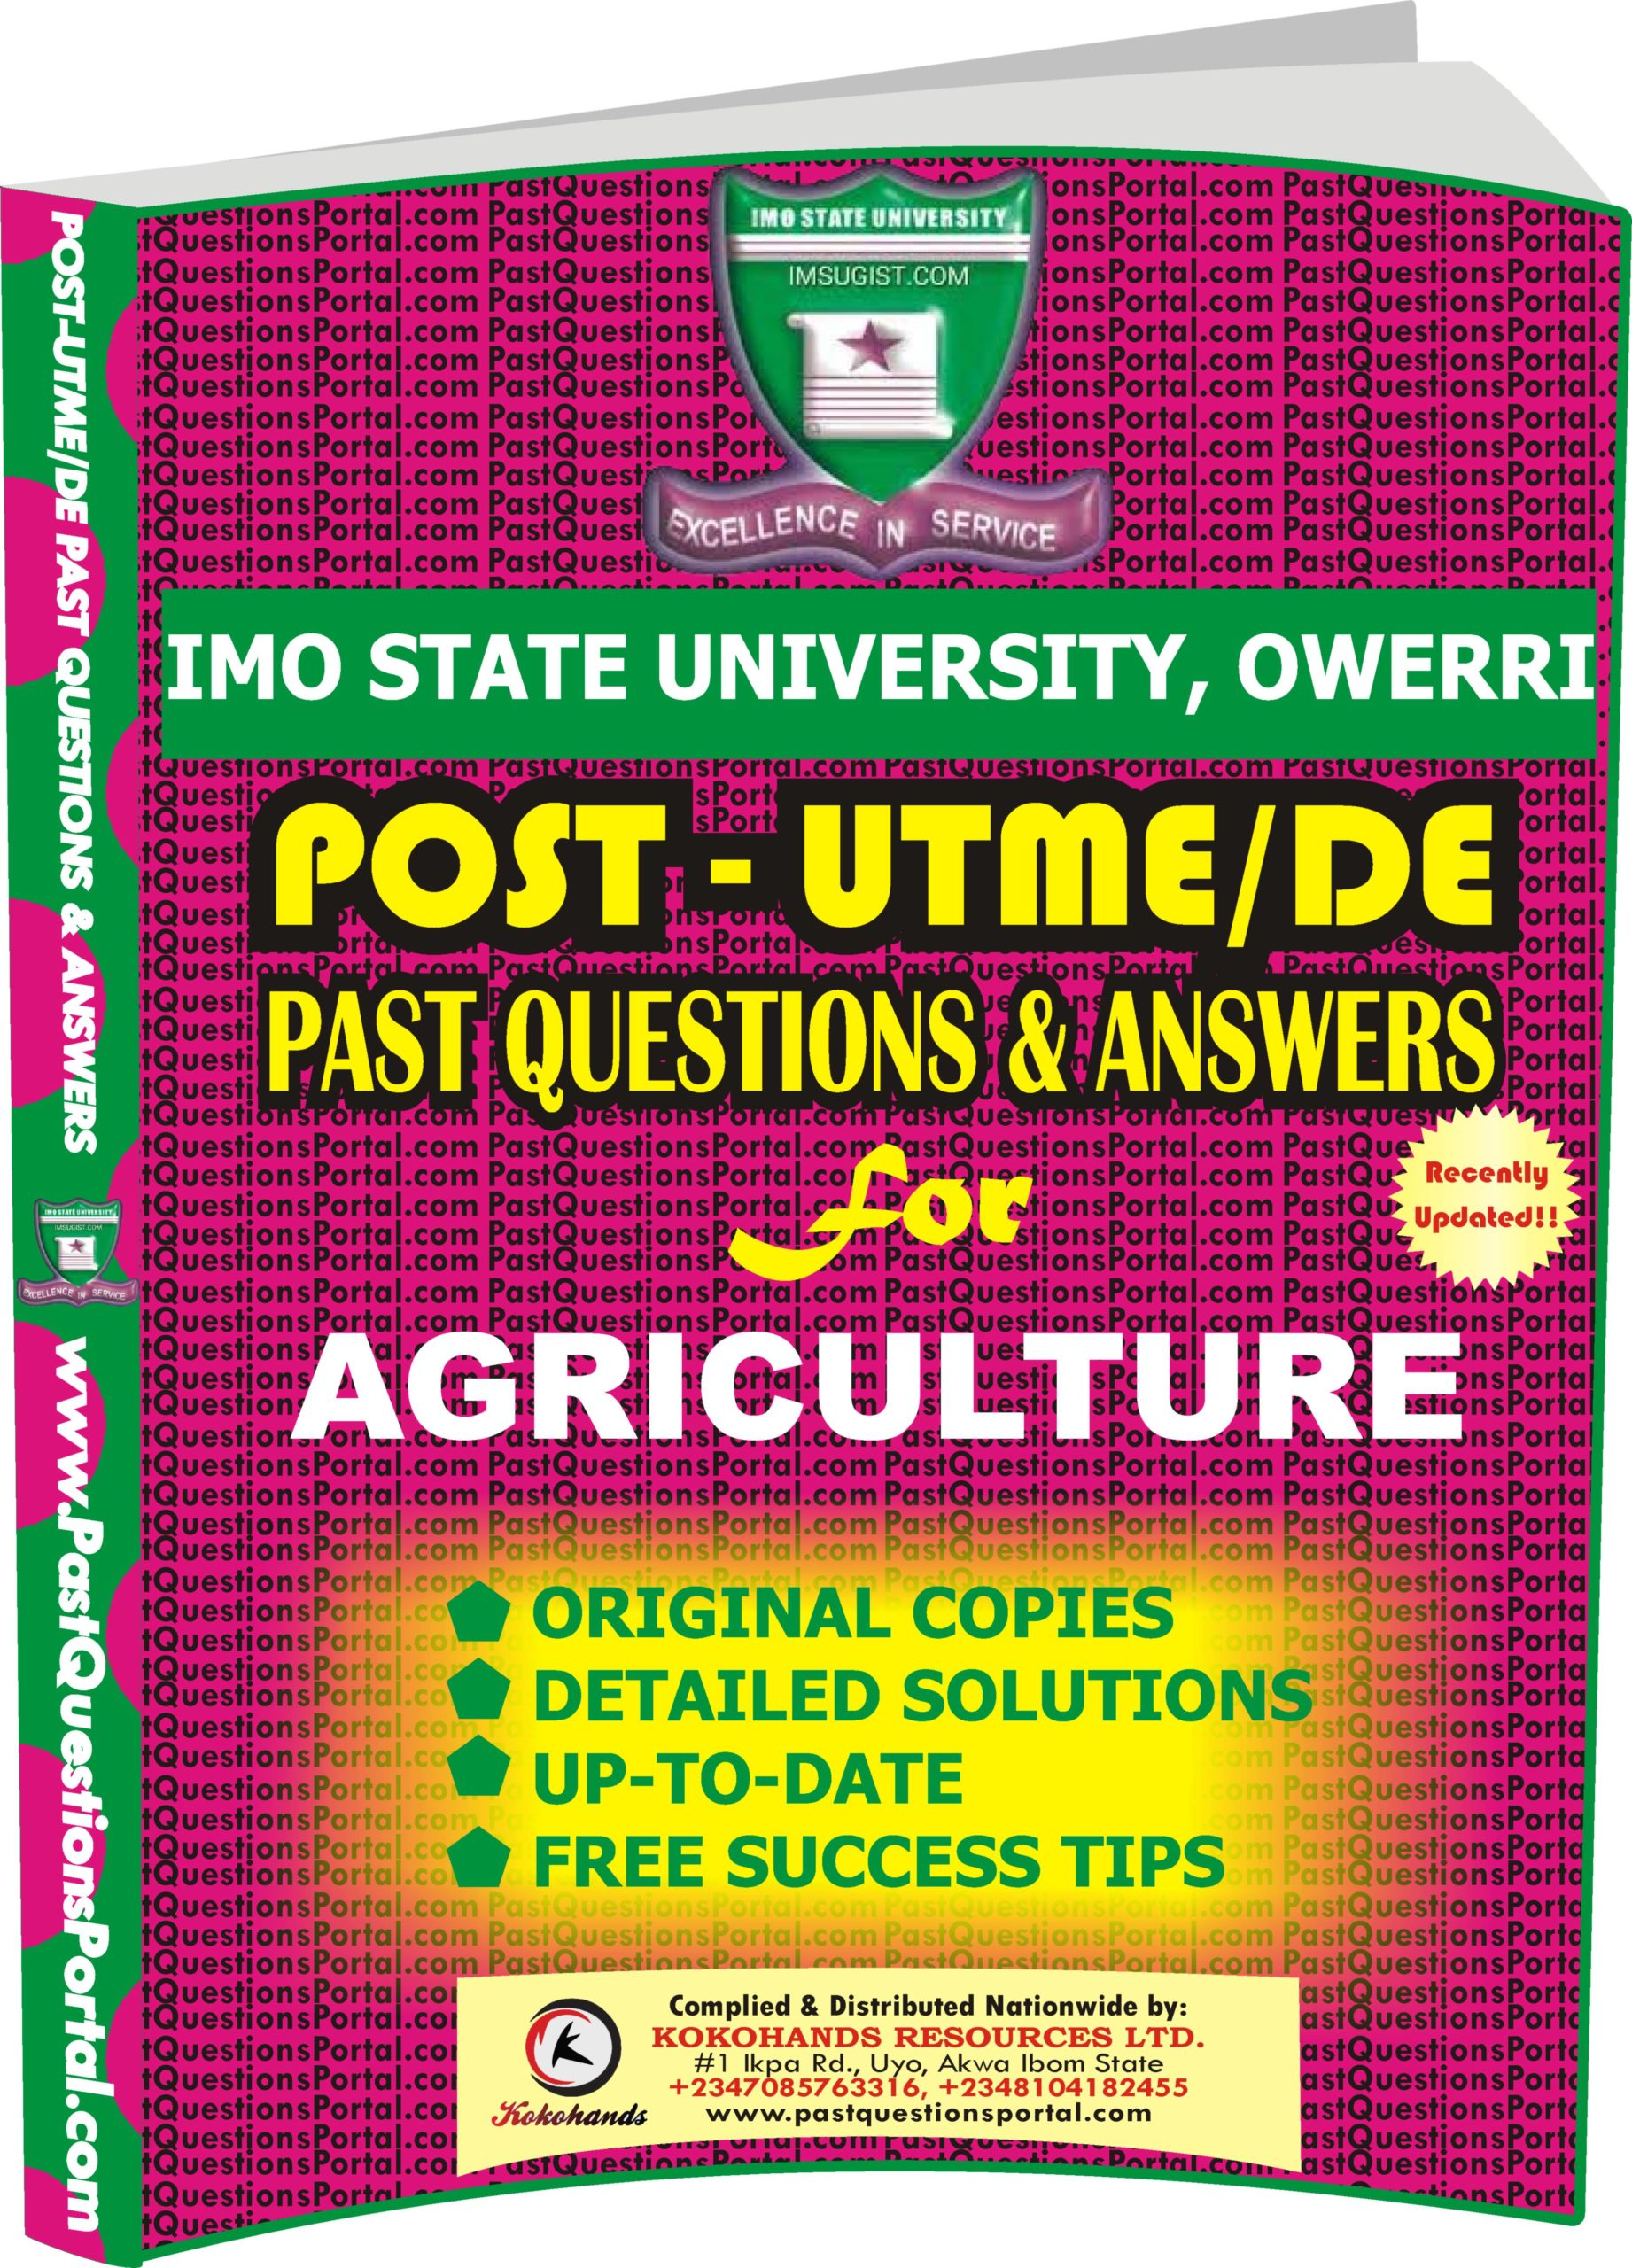 IMSU Post UTME Past Questions for AGRICULTURE